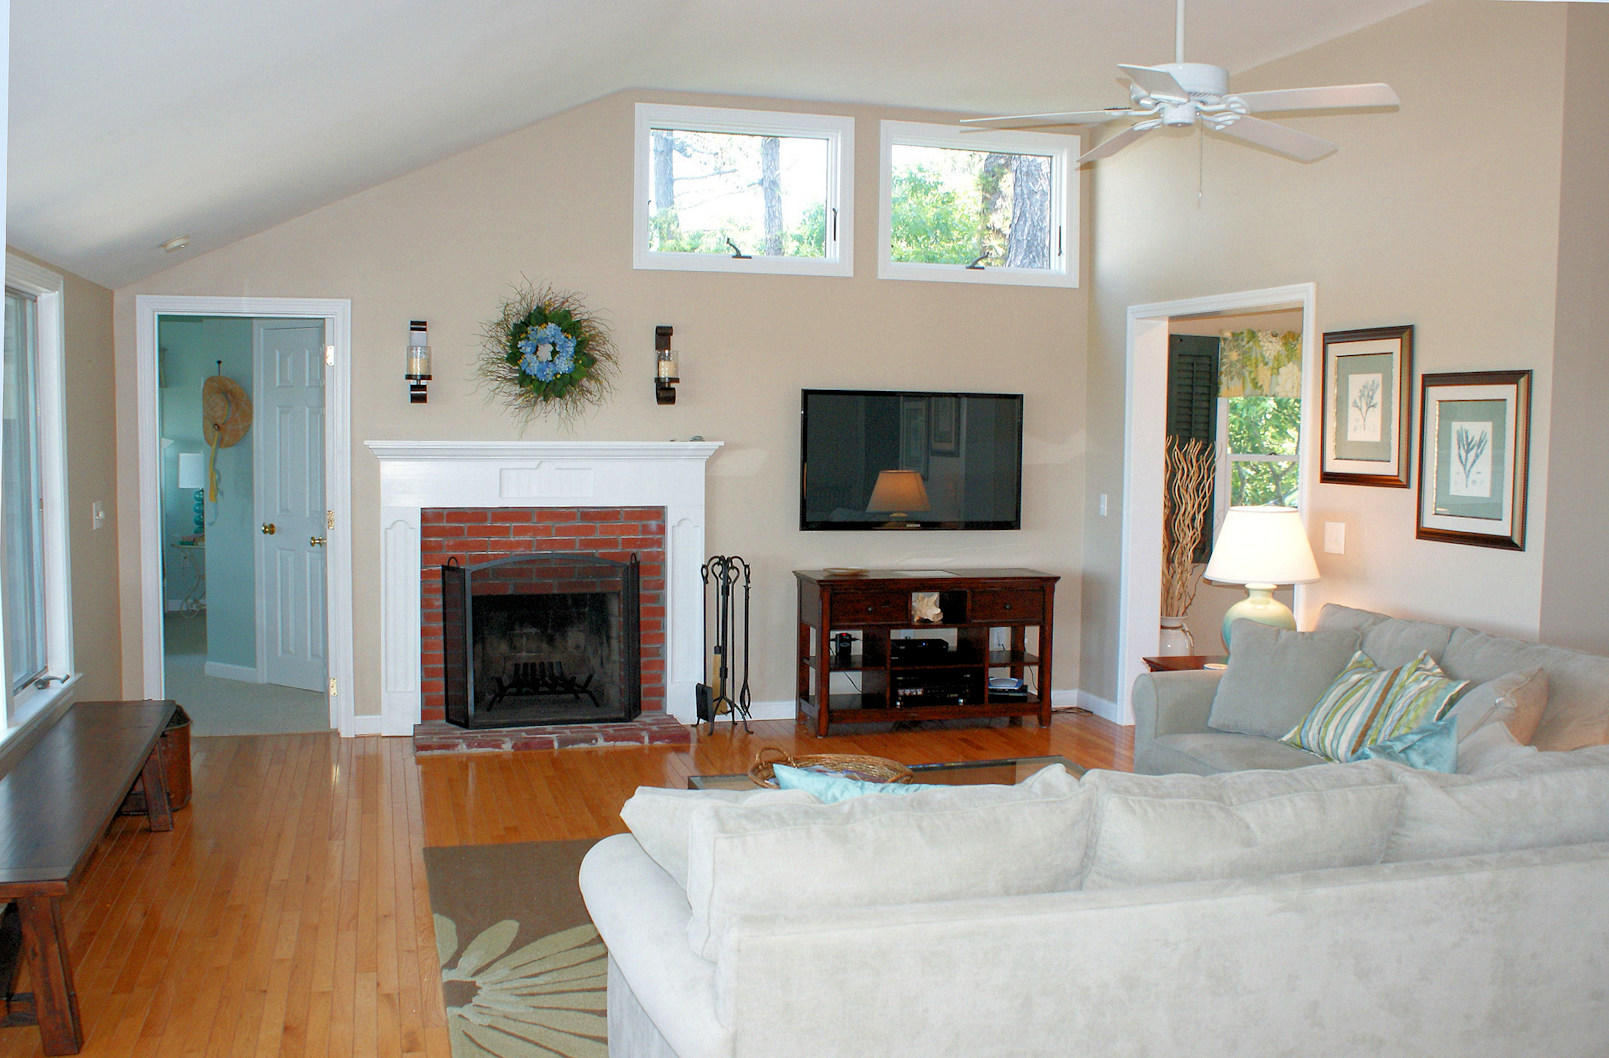 Fireplace and TV in Living area